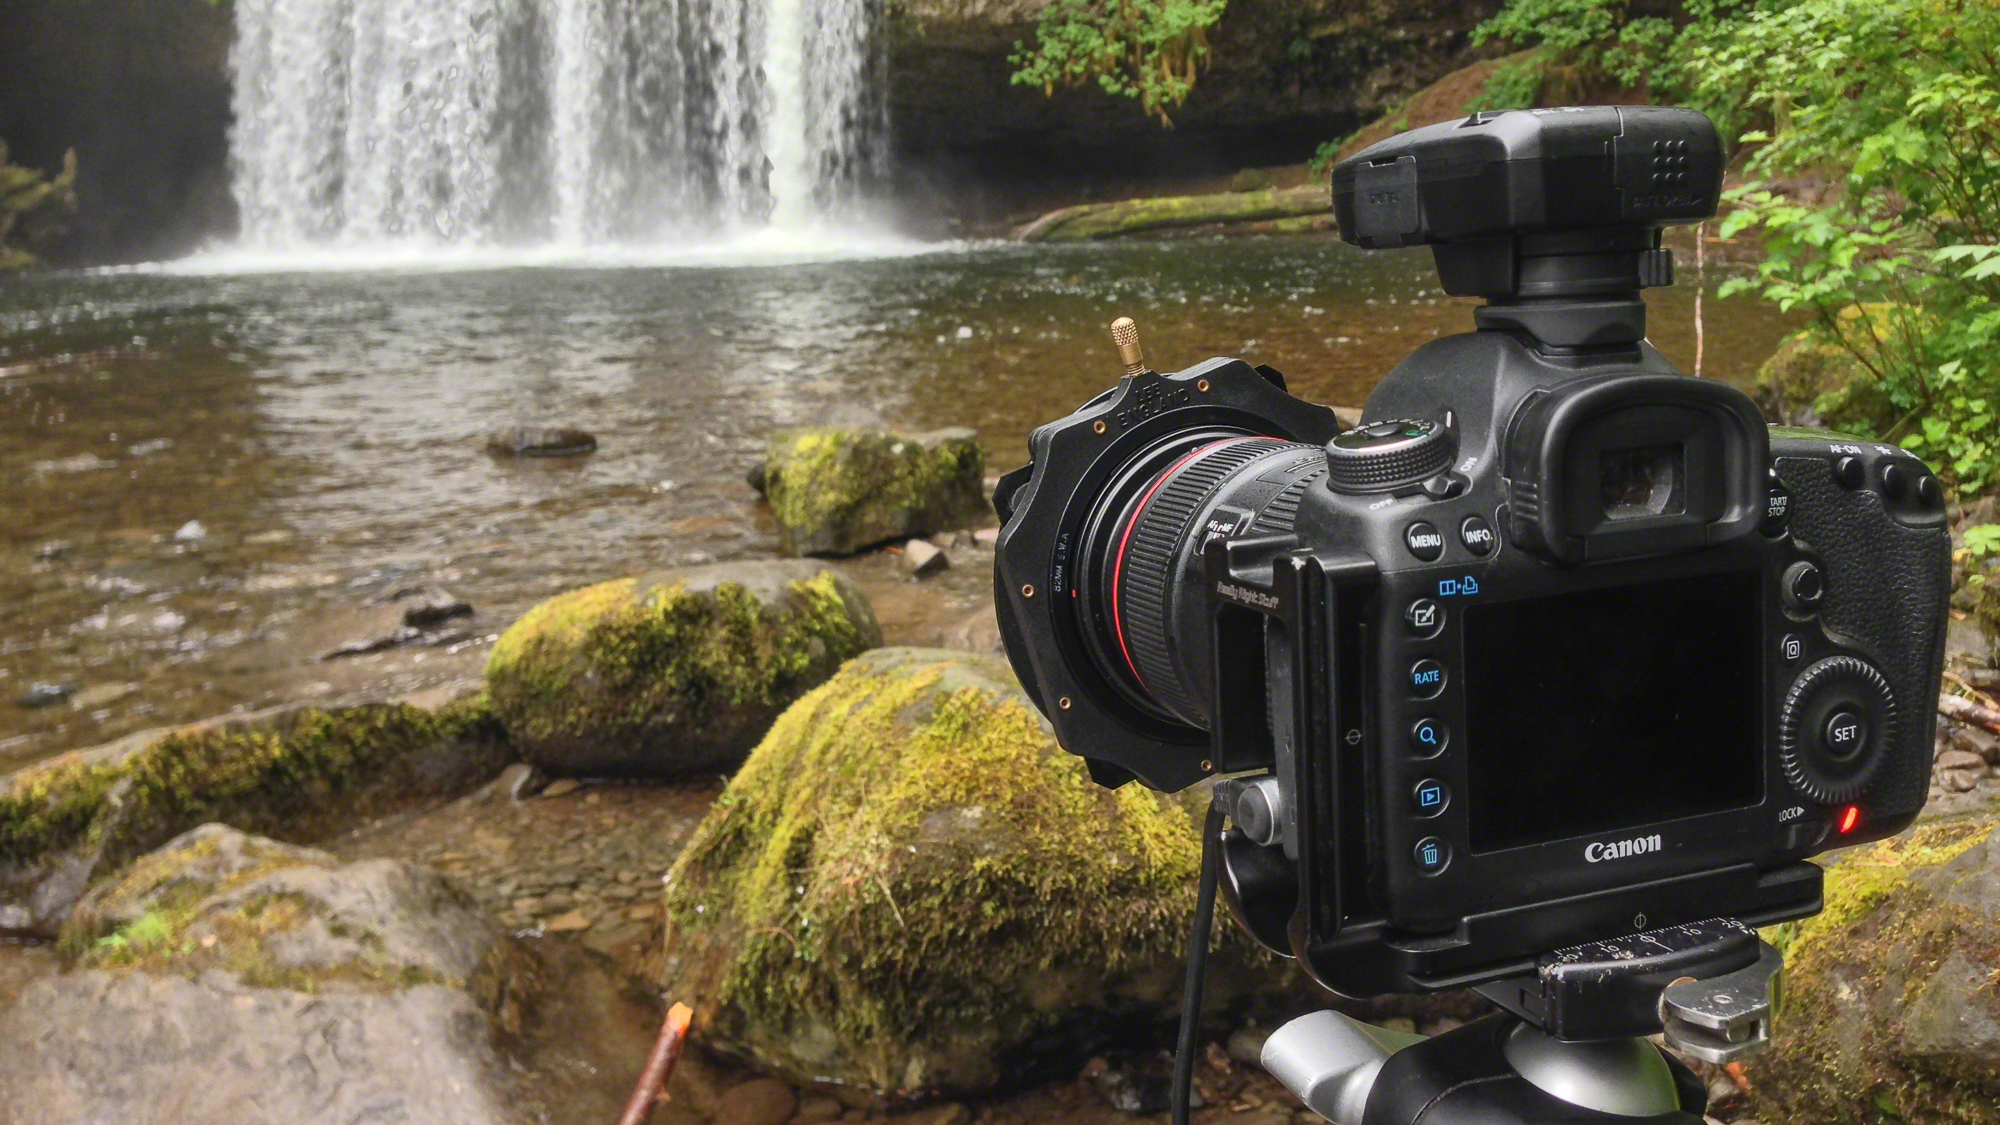 This is my basic setup when photographing waterfalls: Canon 5D Mark III, 24-70mm lens, Lee Filter Holder, and ND filter. Also, the object on the top of my camera is a GPS unit. CLICK HERE to read more about it.